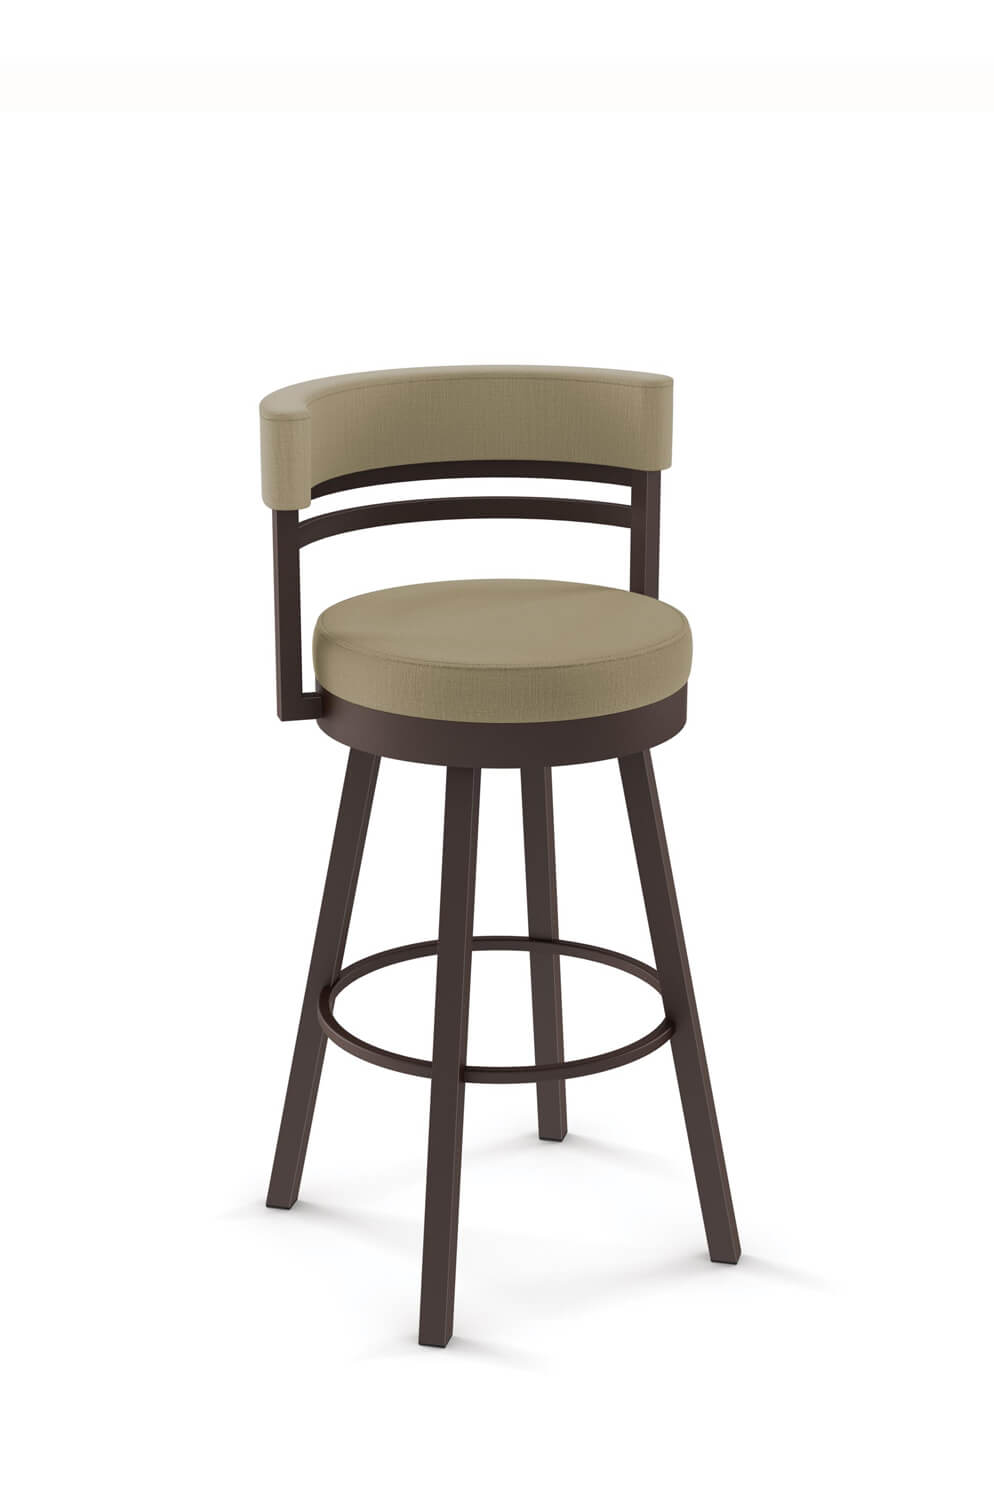 Pleasing Ronny Swivel Stool Customarchery Wood Chair Design Ideas Customarcherynet